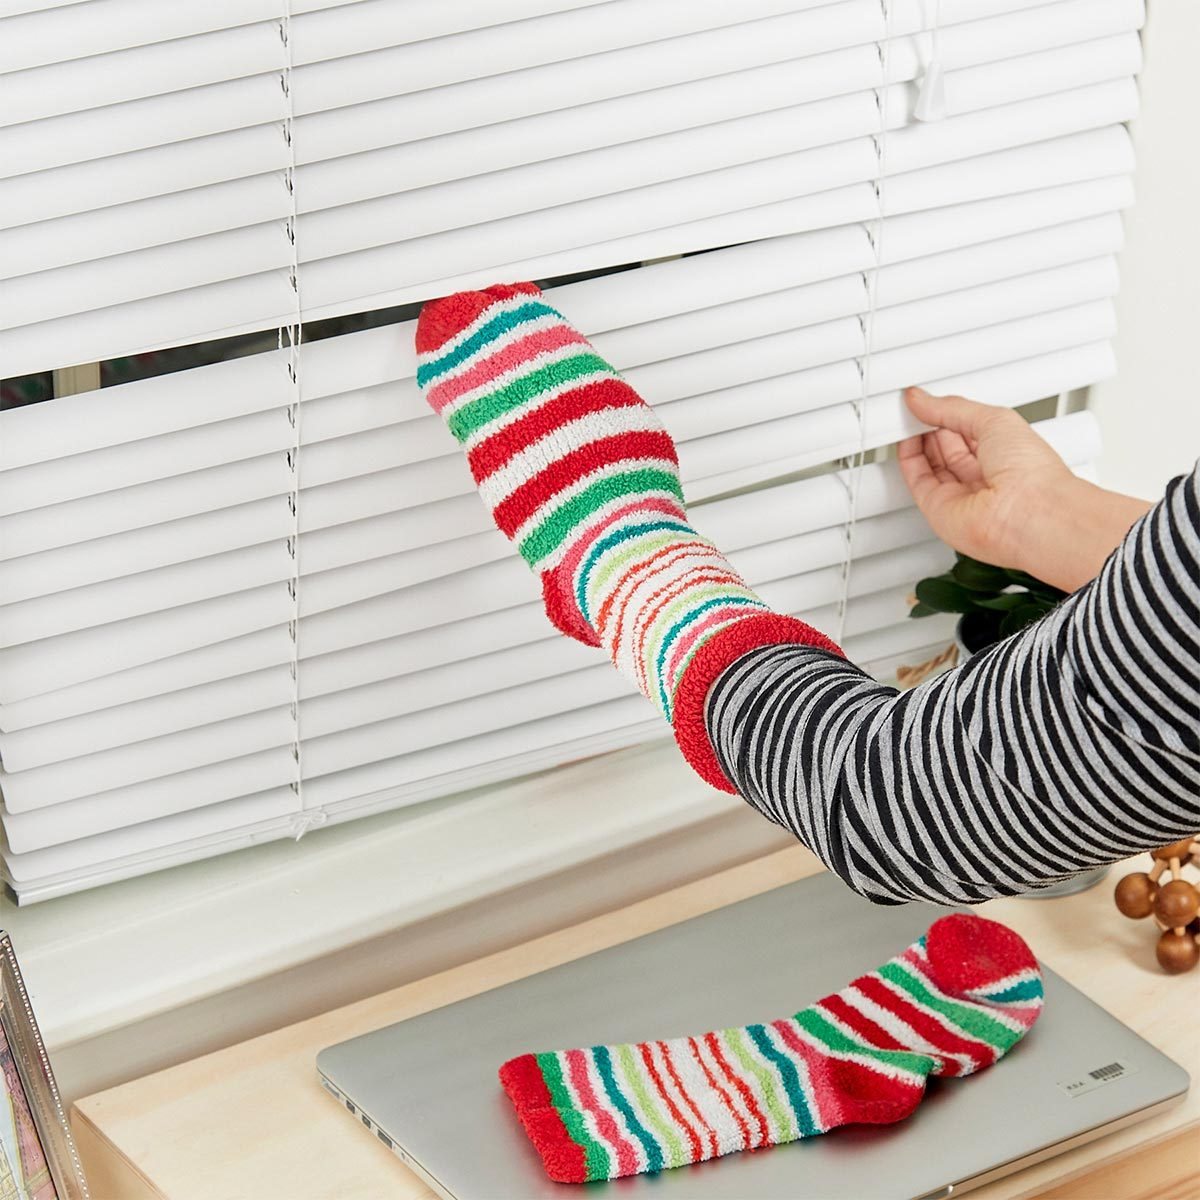 Use Soft Socks to Clean Blinds